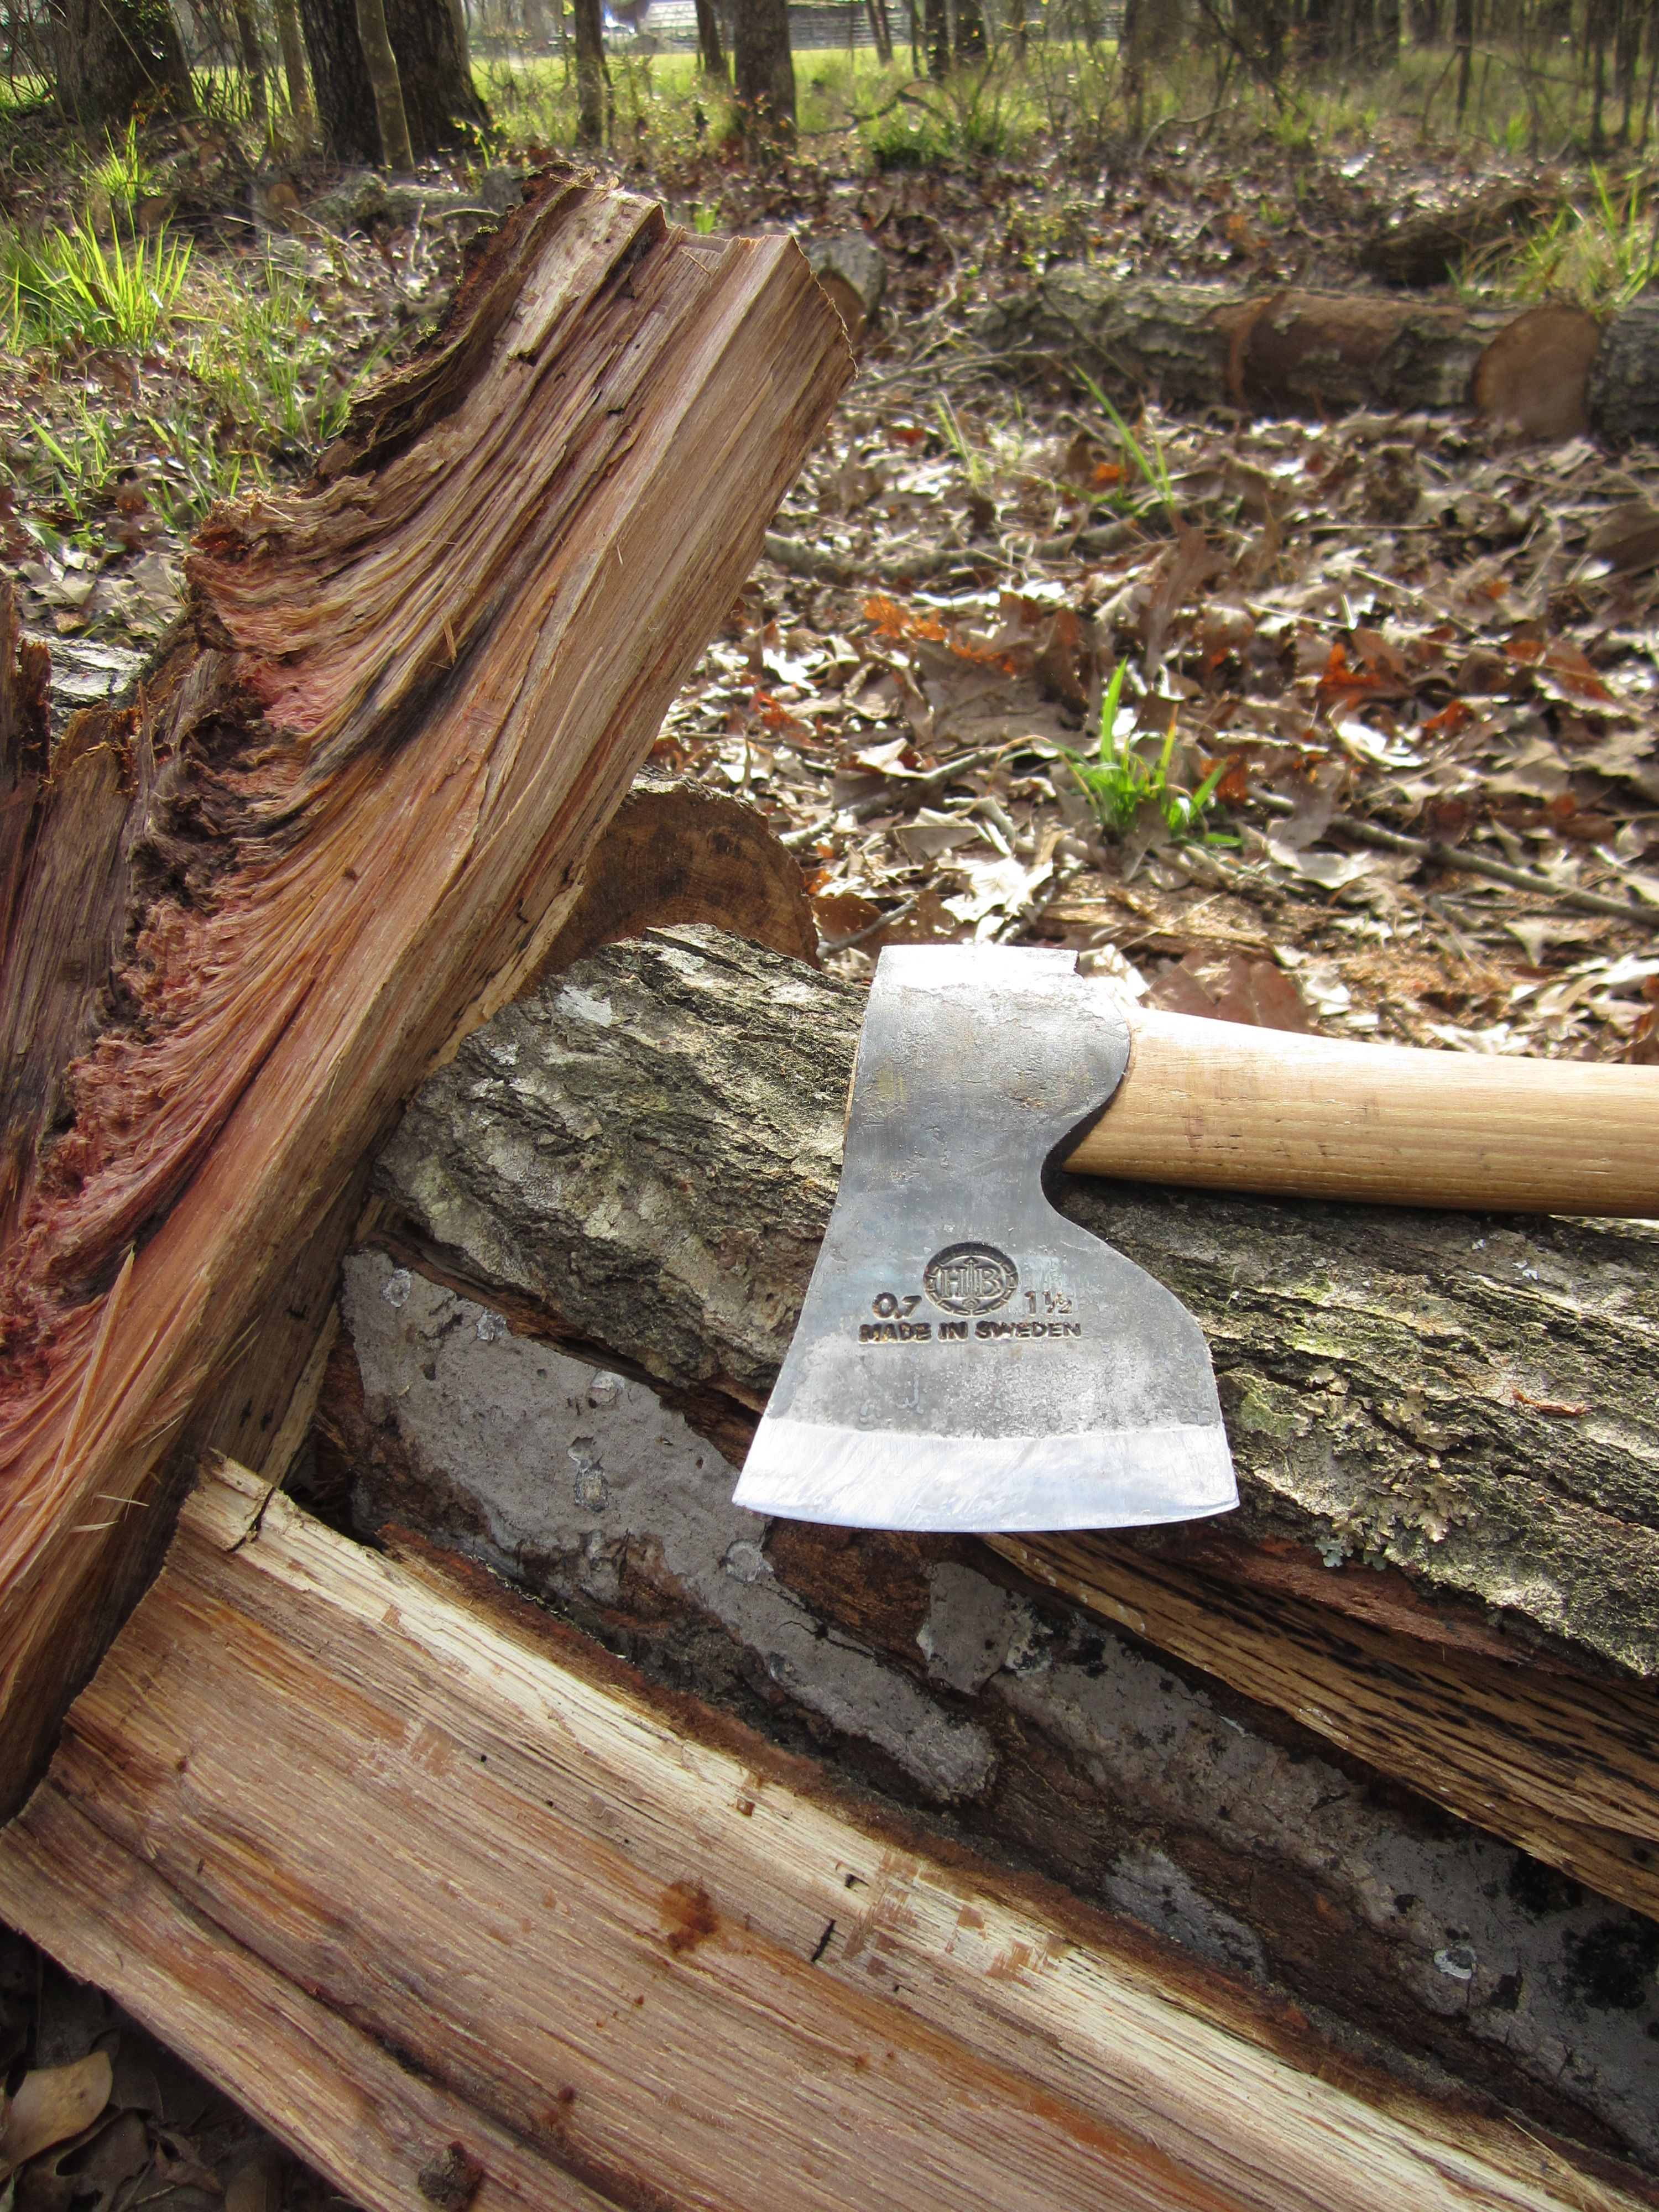 How to Sharpen an Axe Step by Step Hults Bruk Knife